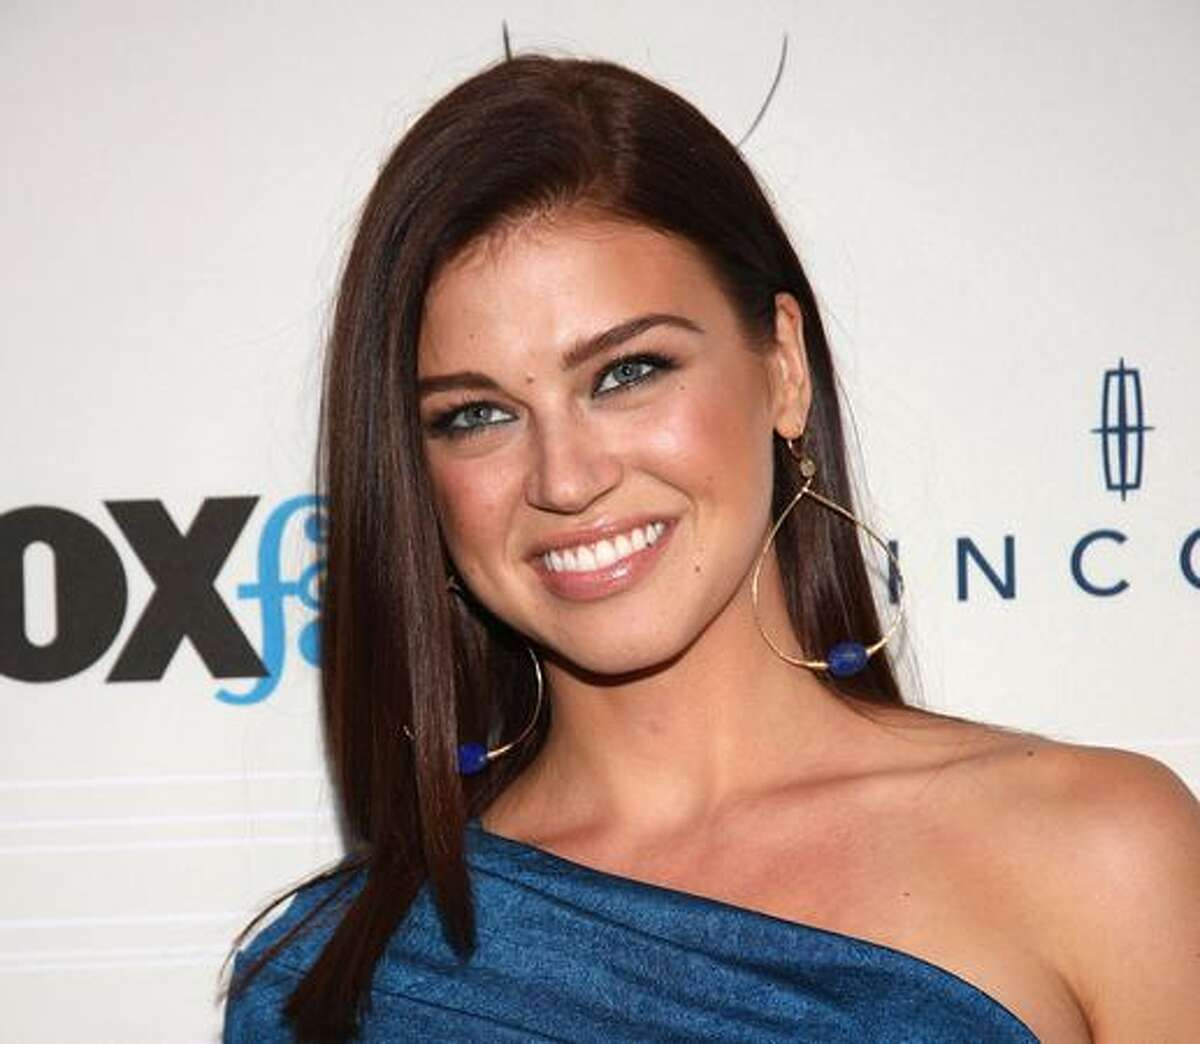 Actress Adrianne Palicki attends a Fox network event in West Hollywood, Calif., in this September 2010 file photo.